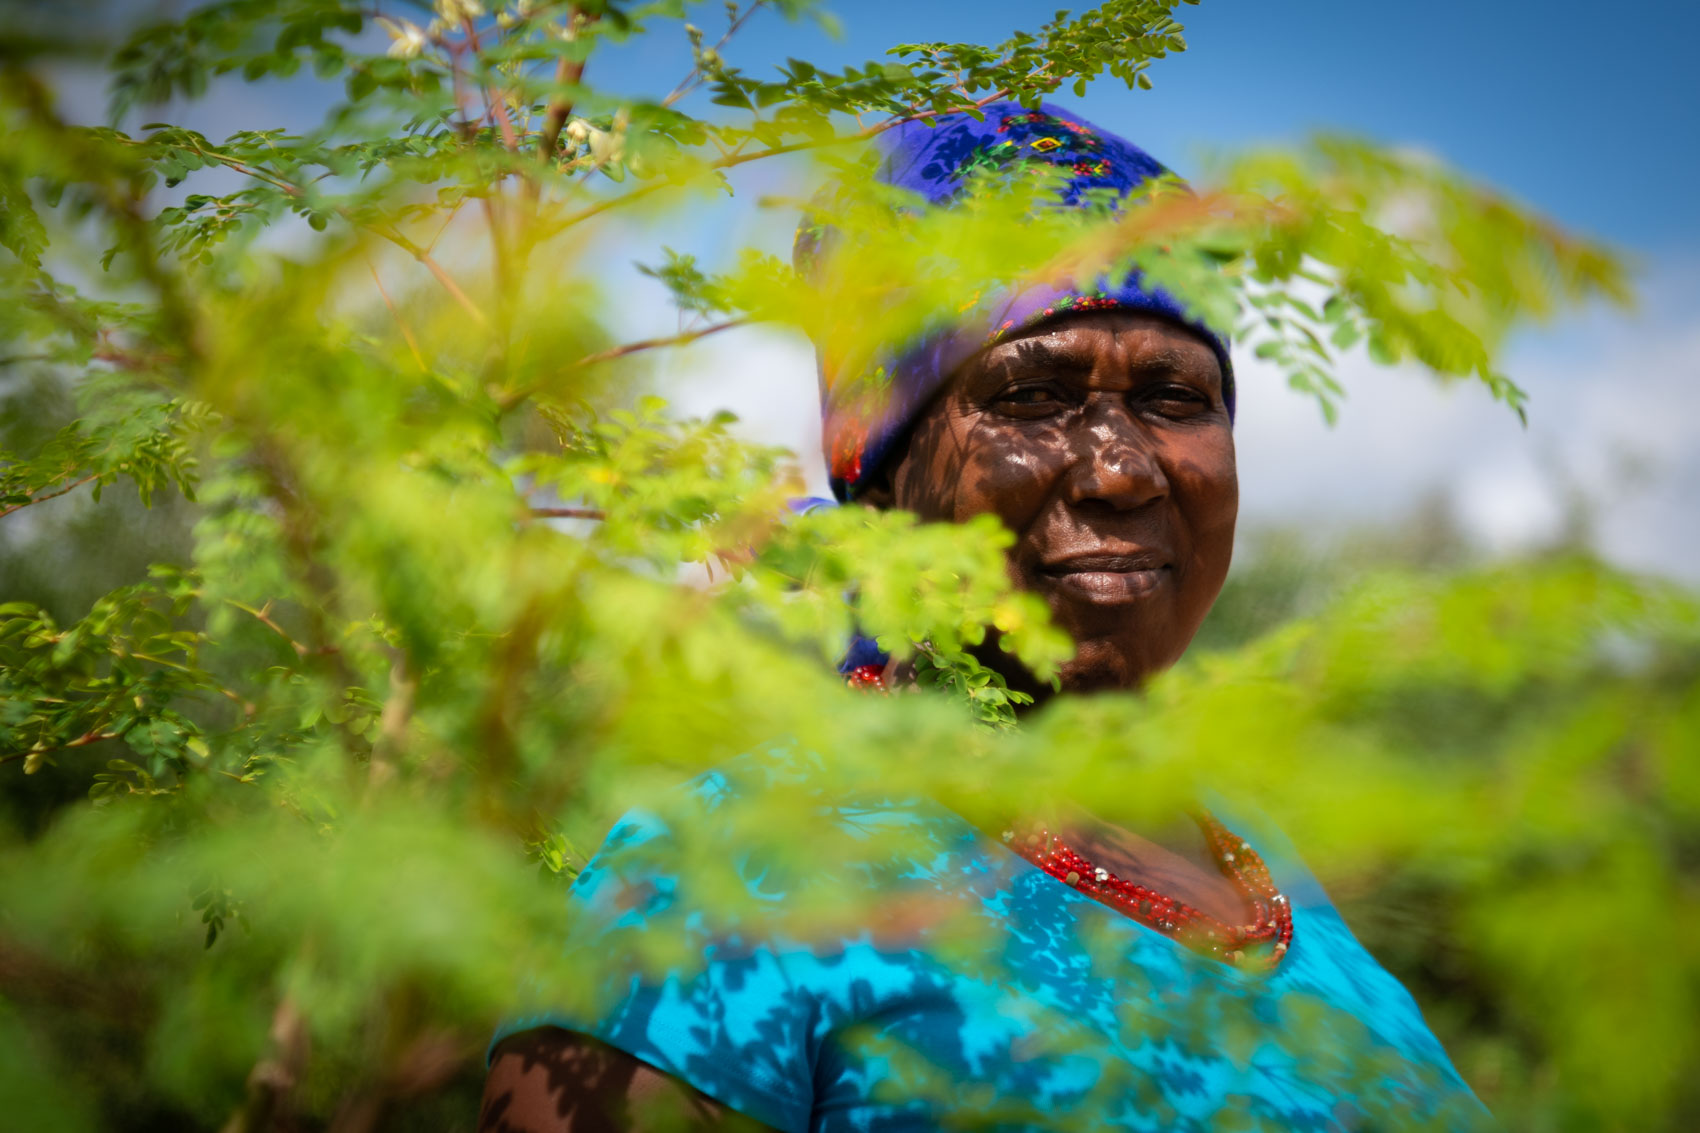 A granny looks through a moringa tree at Nourish eco village in South Africa